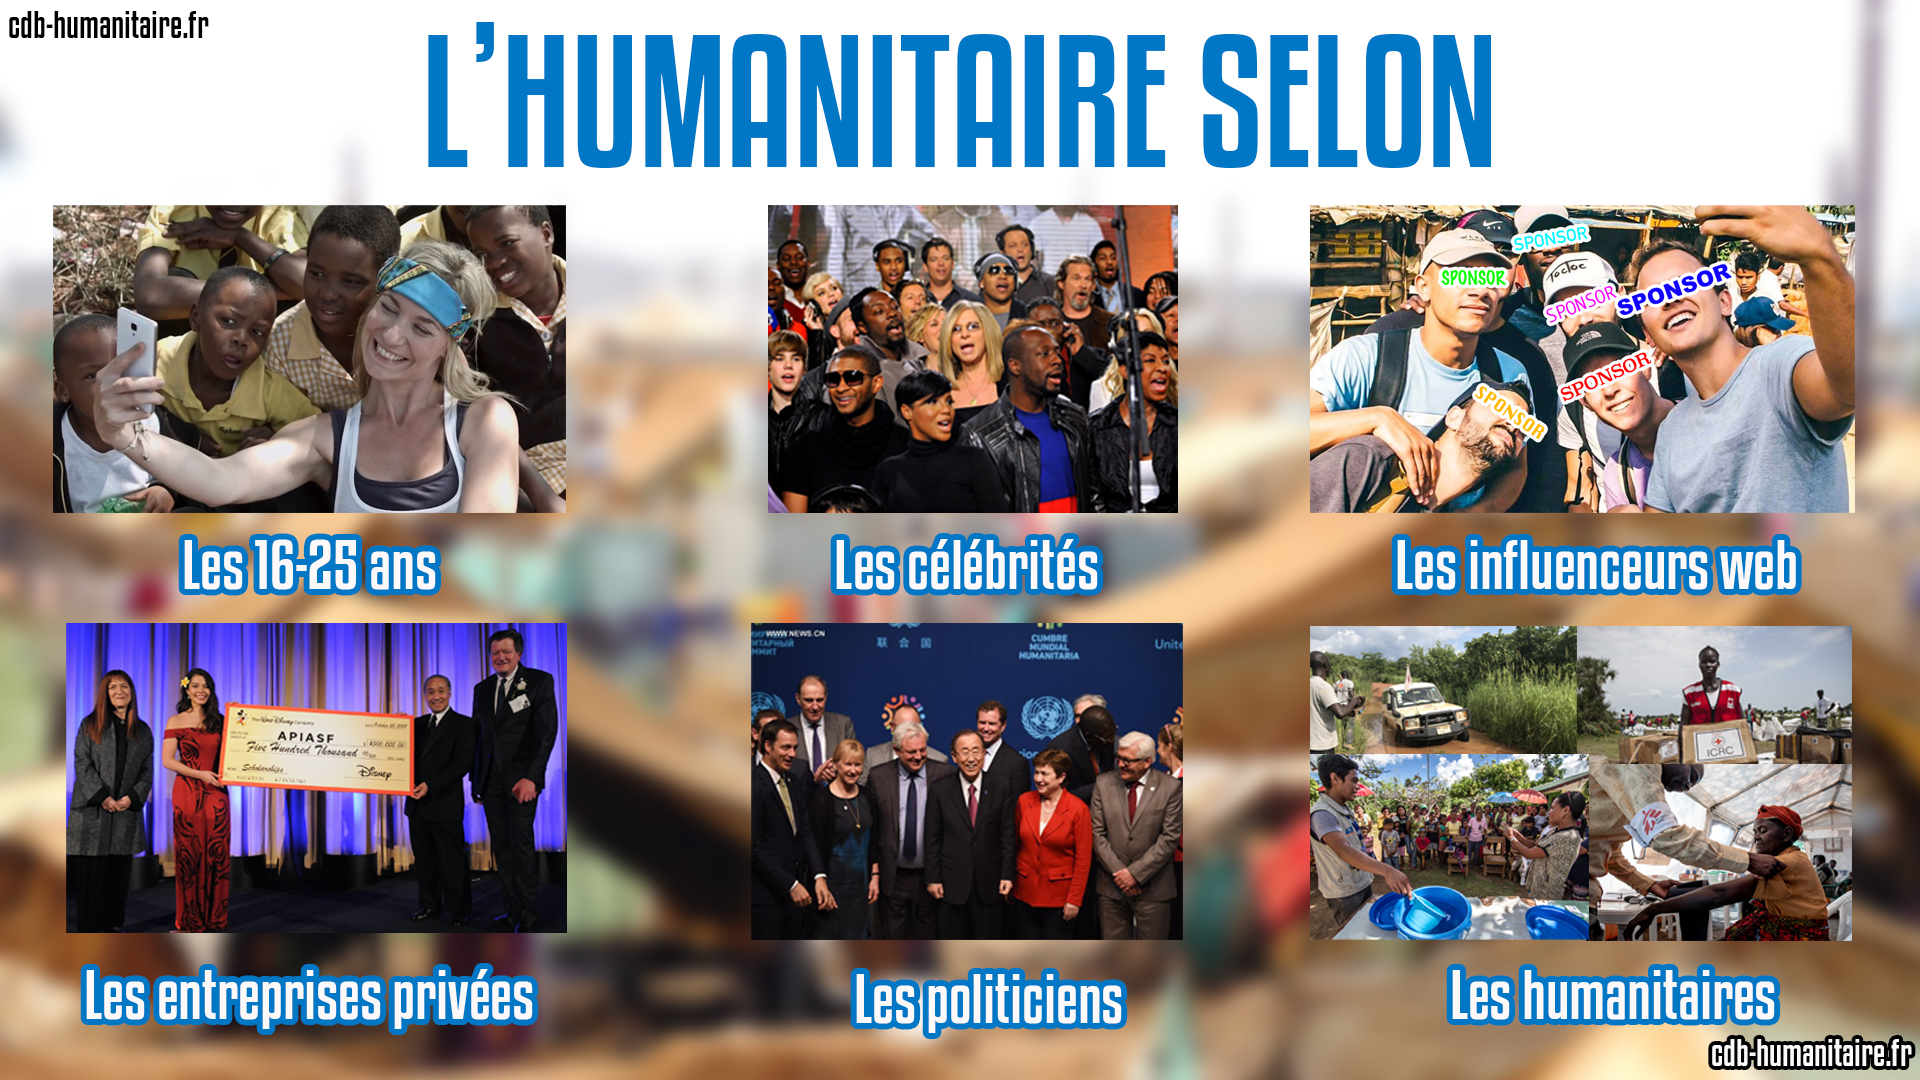 http://cdb-humanitaire.fr